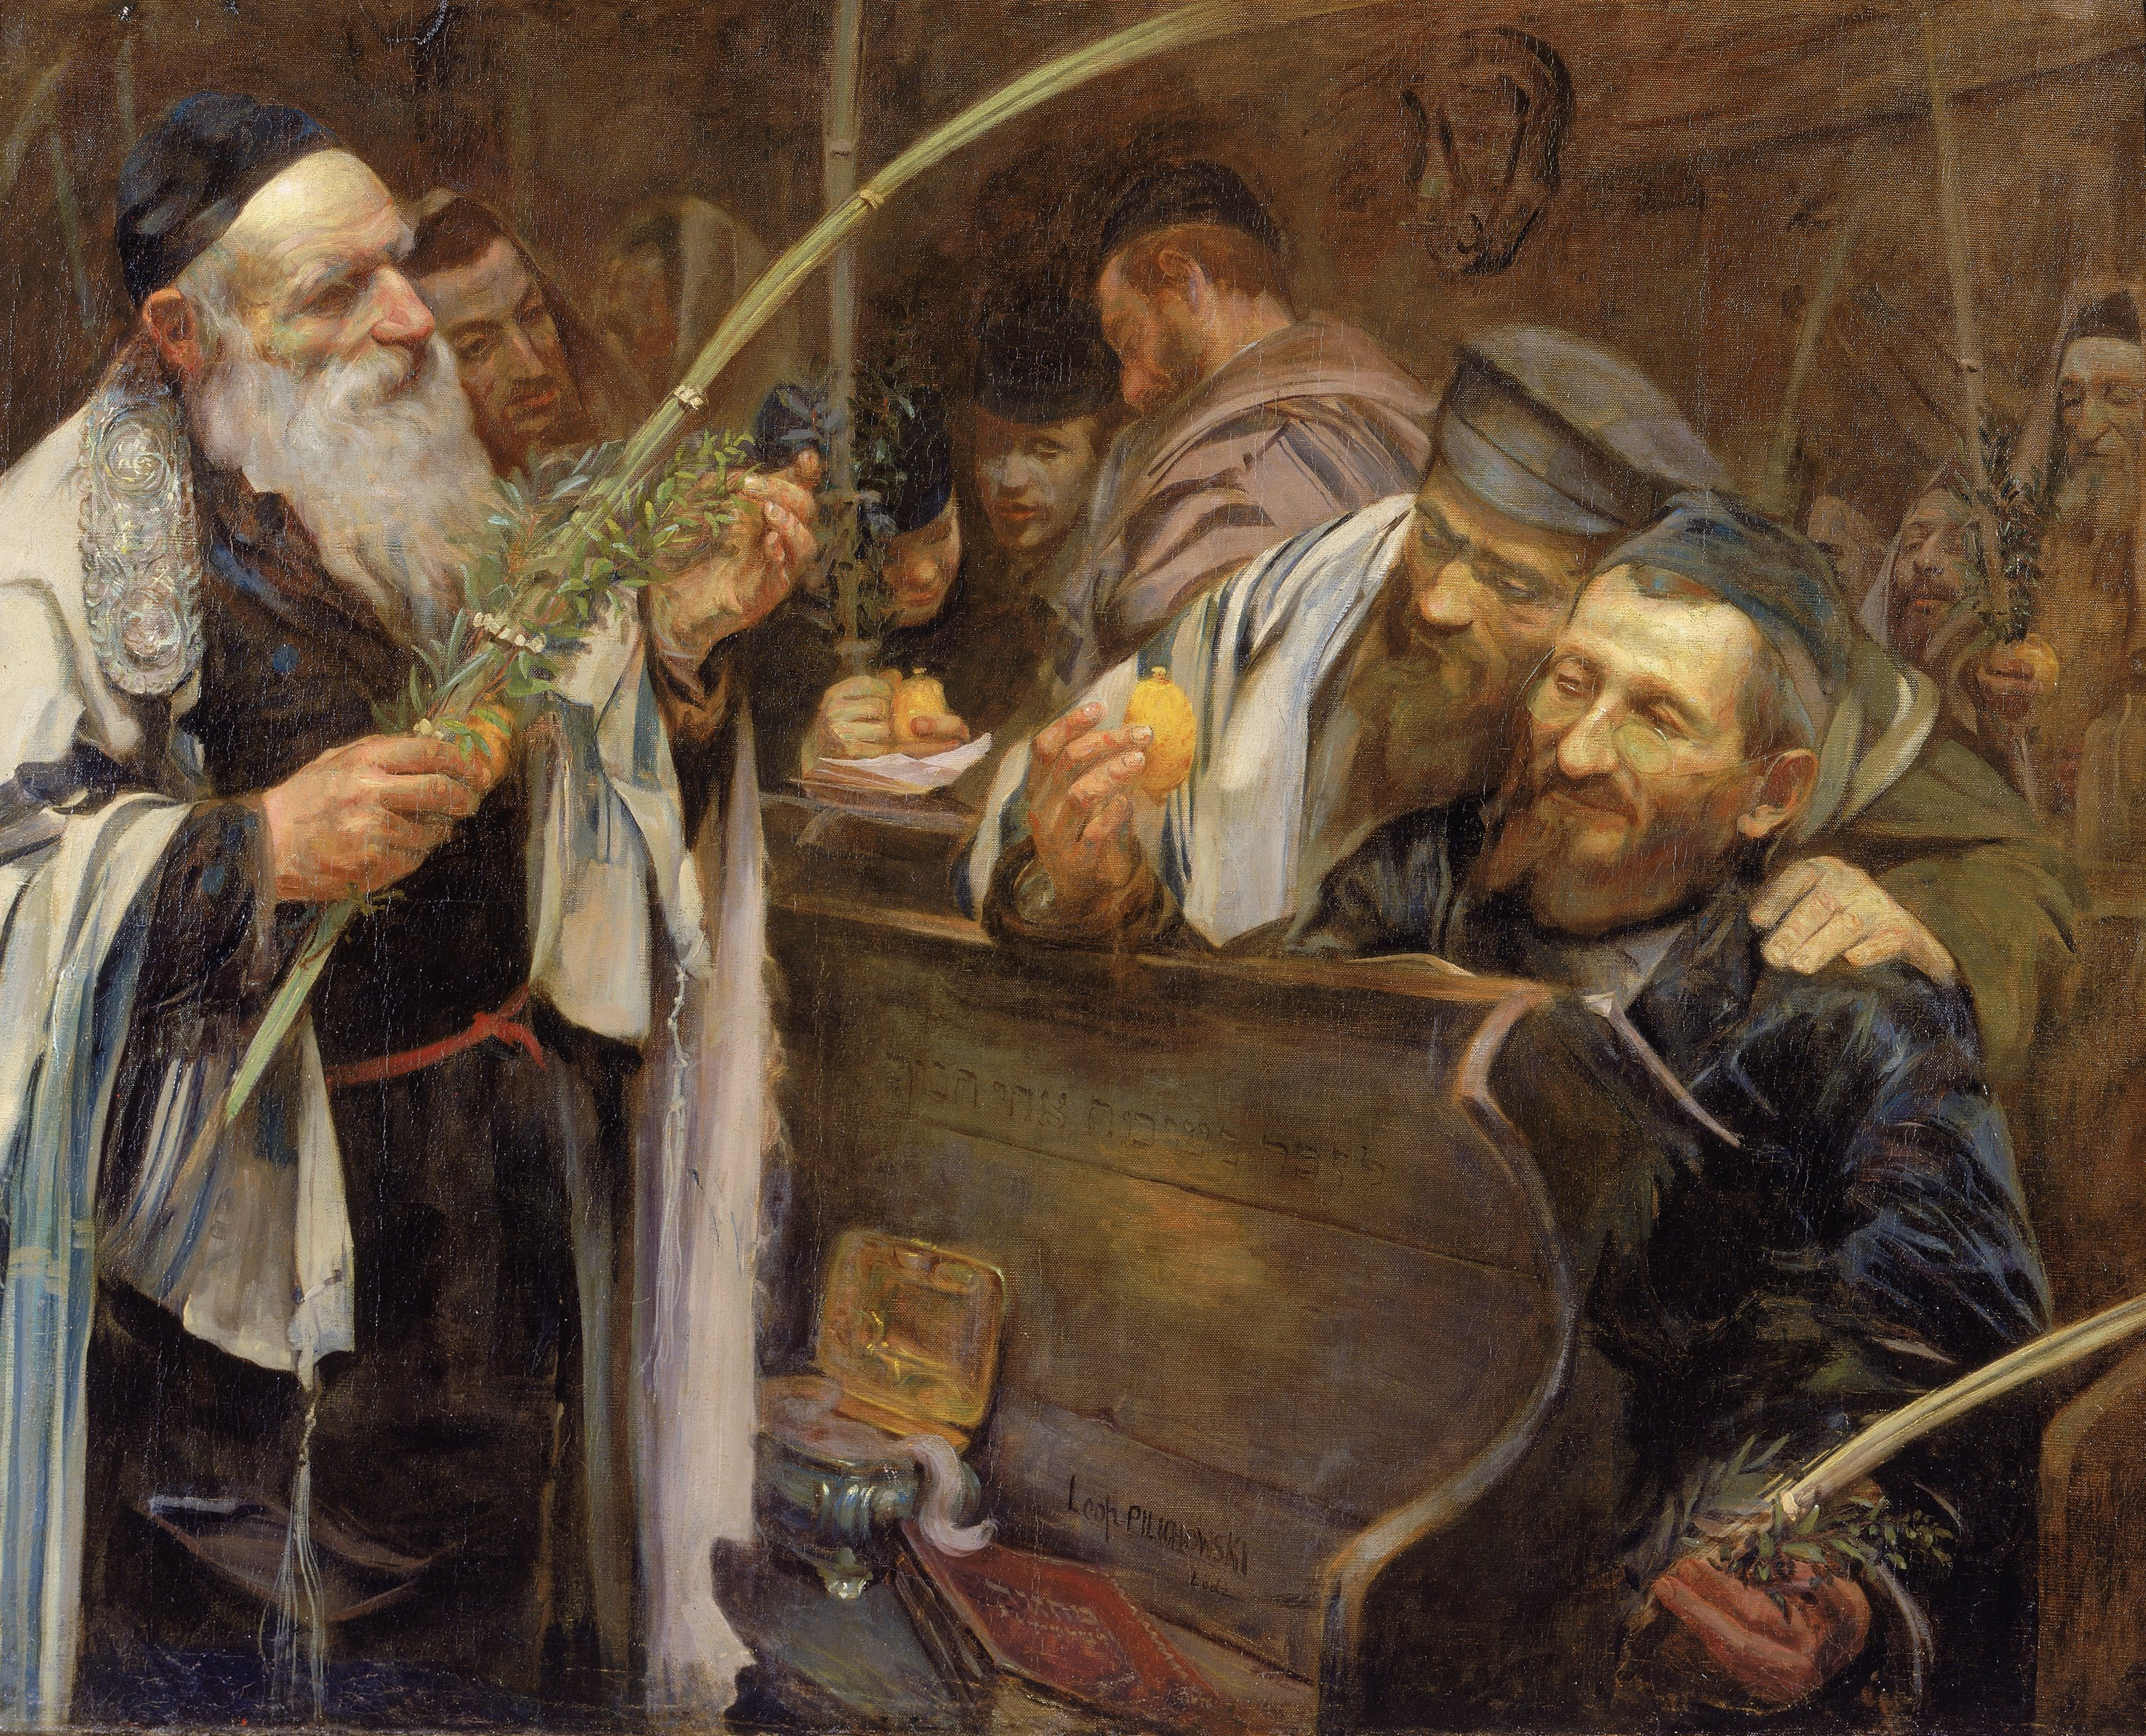 JM 89-55, Sukkot , Artist: Pilchowski, Photographer: John Parnell, Photo © The Jewish Museum, New York